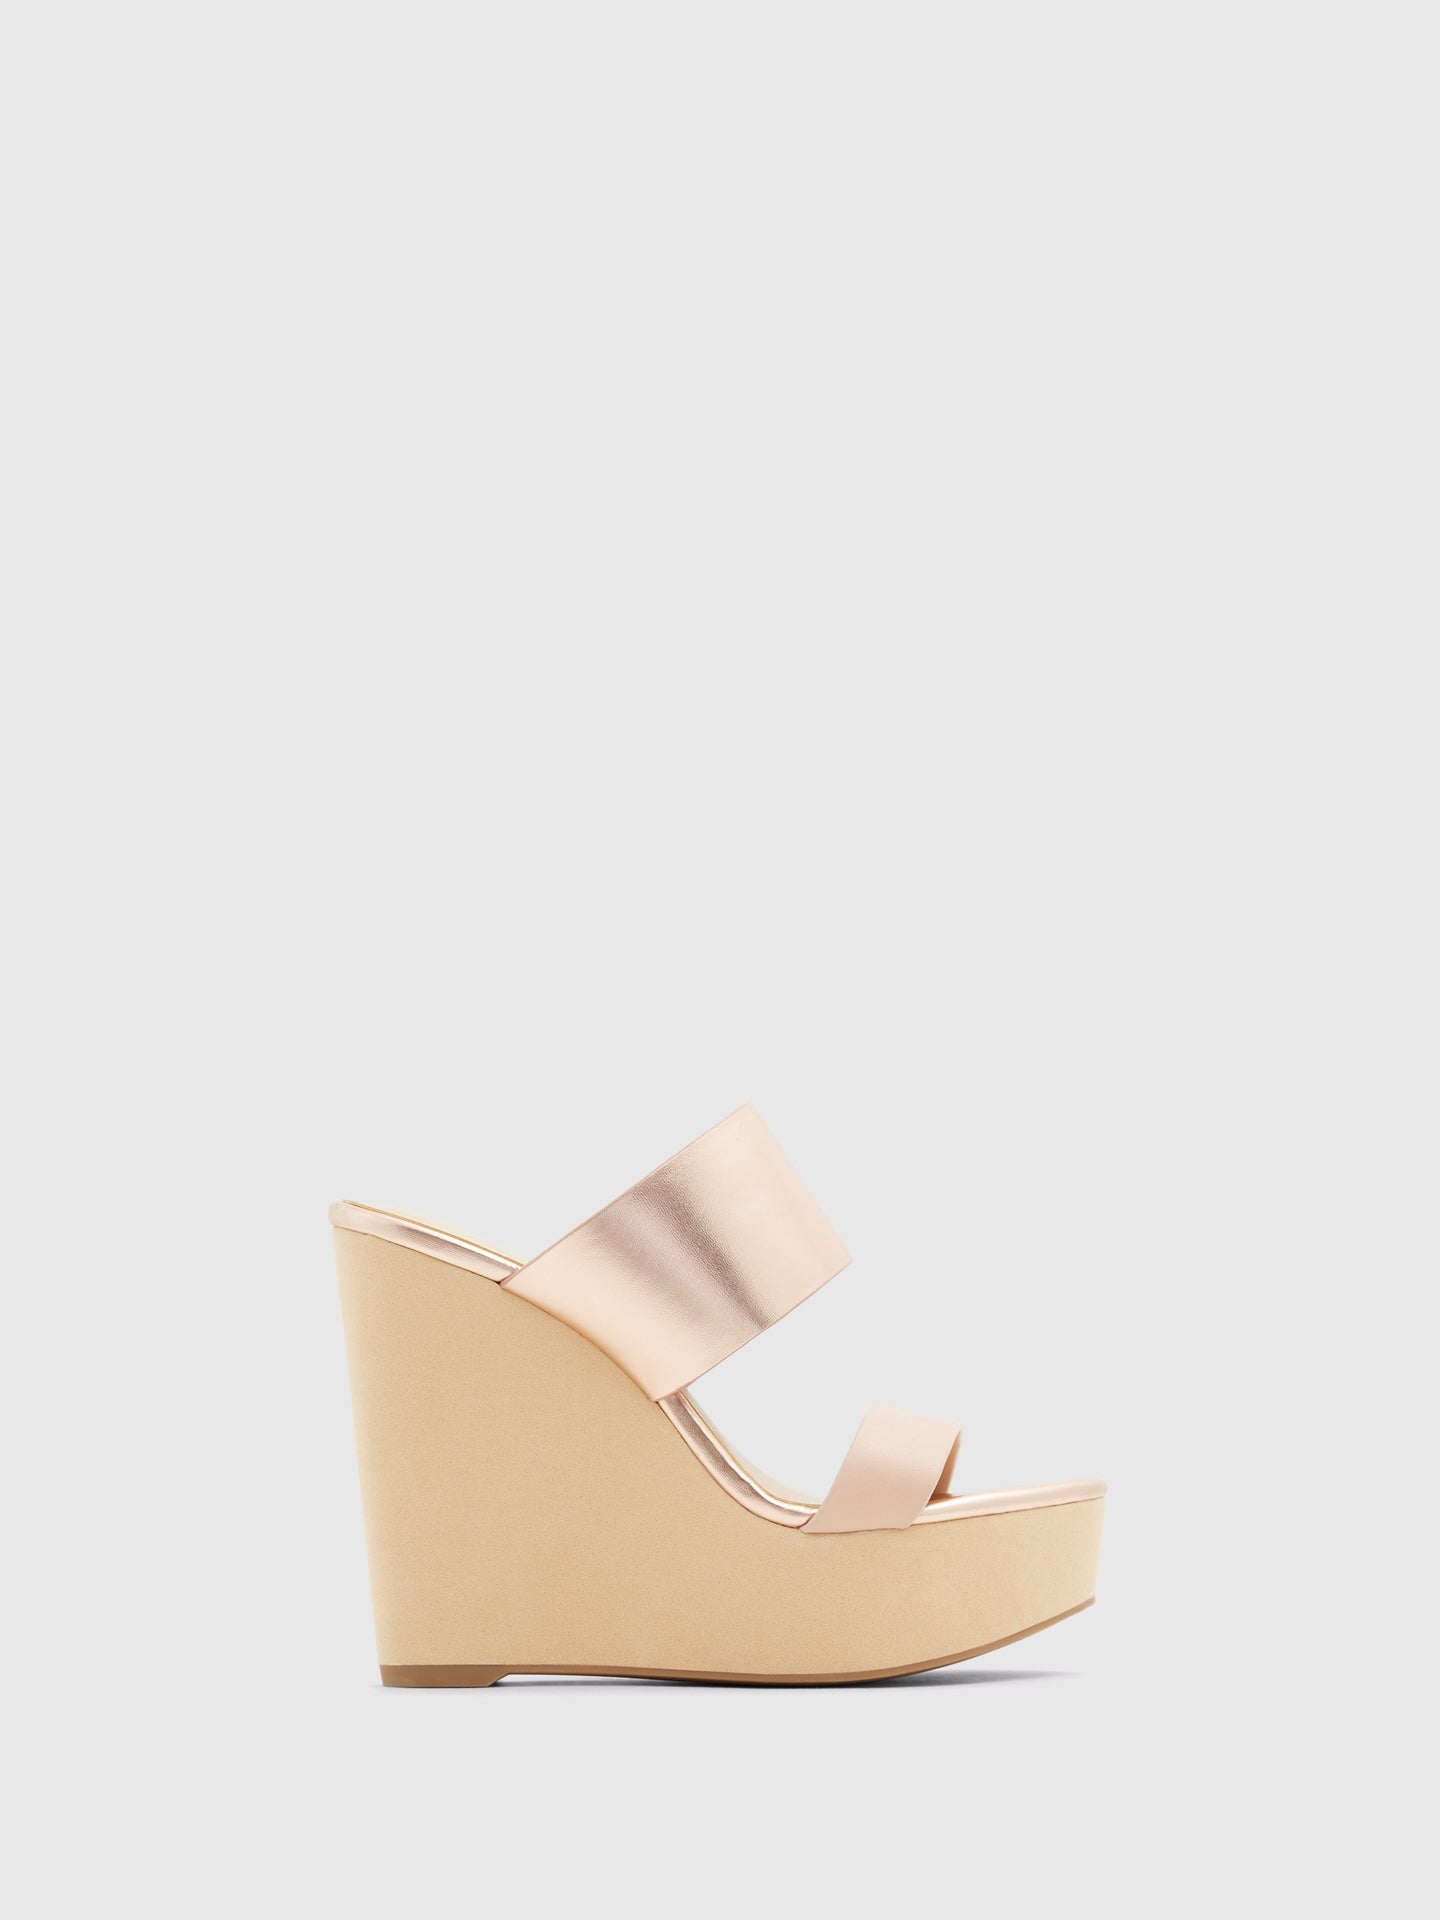 Aldo RoseGold Wedge Sandals